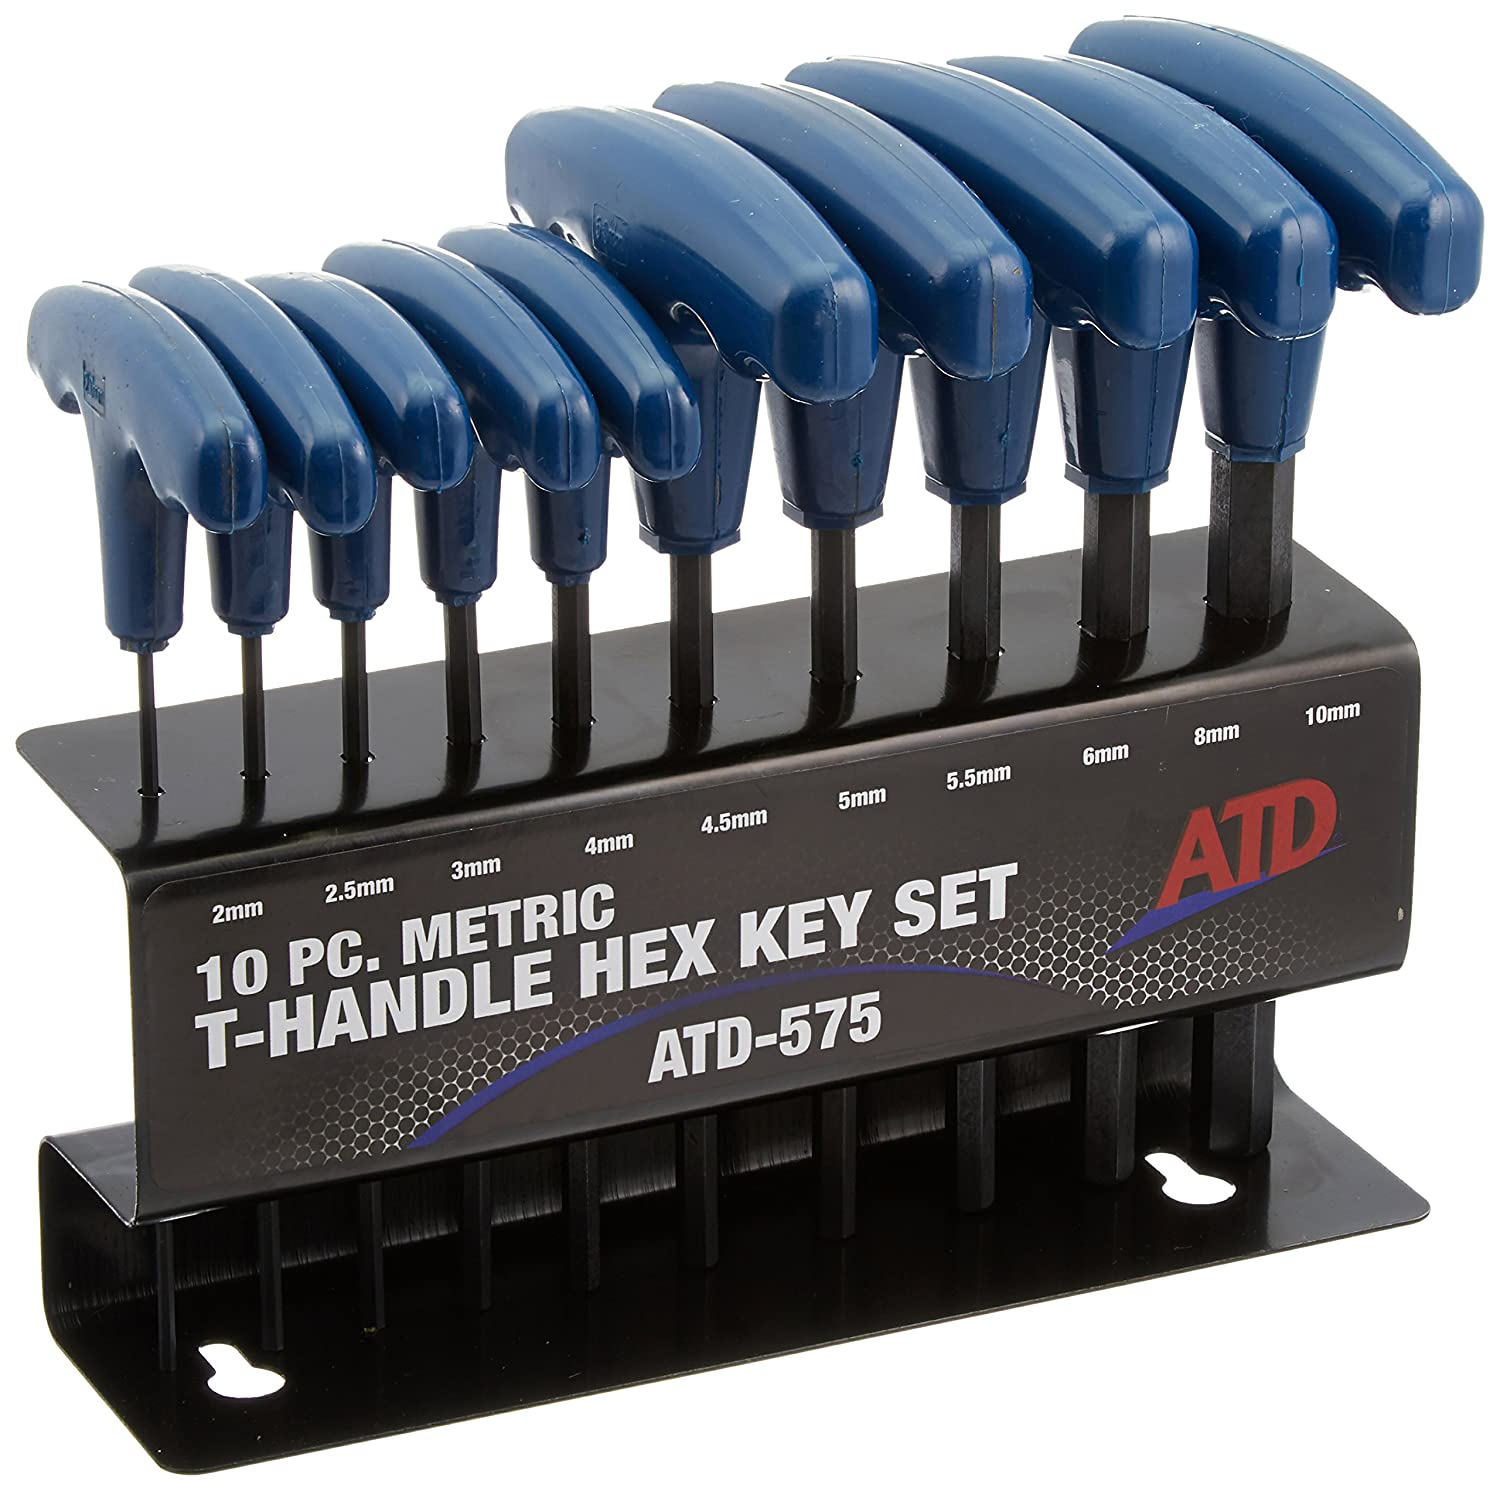 ATD Tools (575) 10-Piece Metric T-Handle Hex Key Set